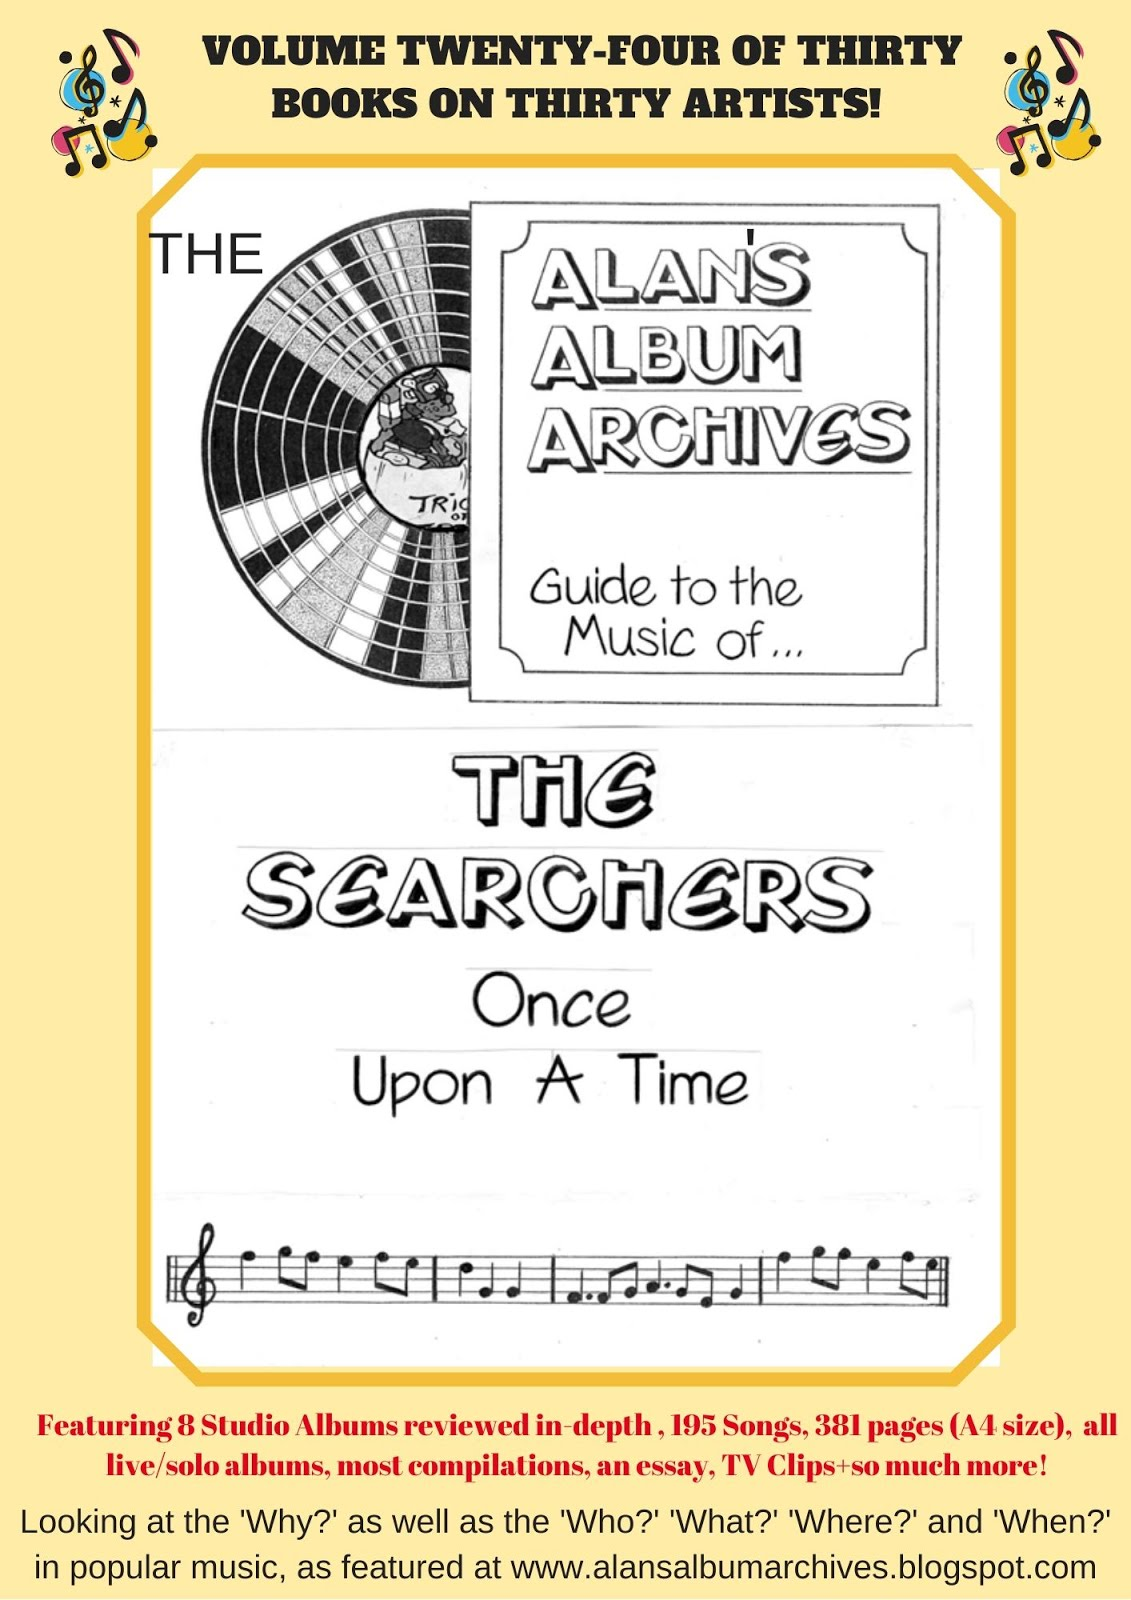 'Once Upon A Time - The Alan's Album Archives Guide To The Music Of...The Searchers'